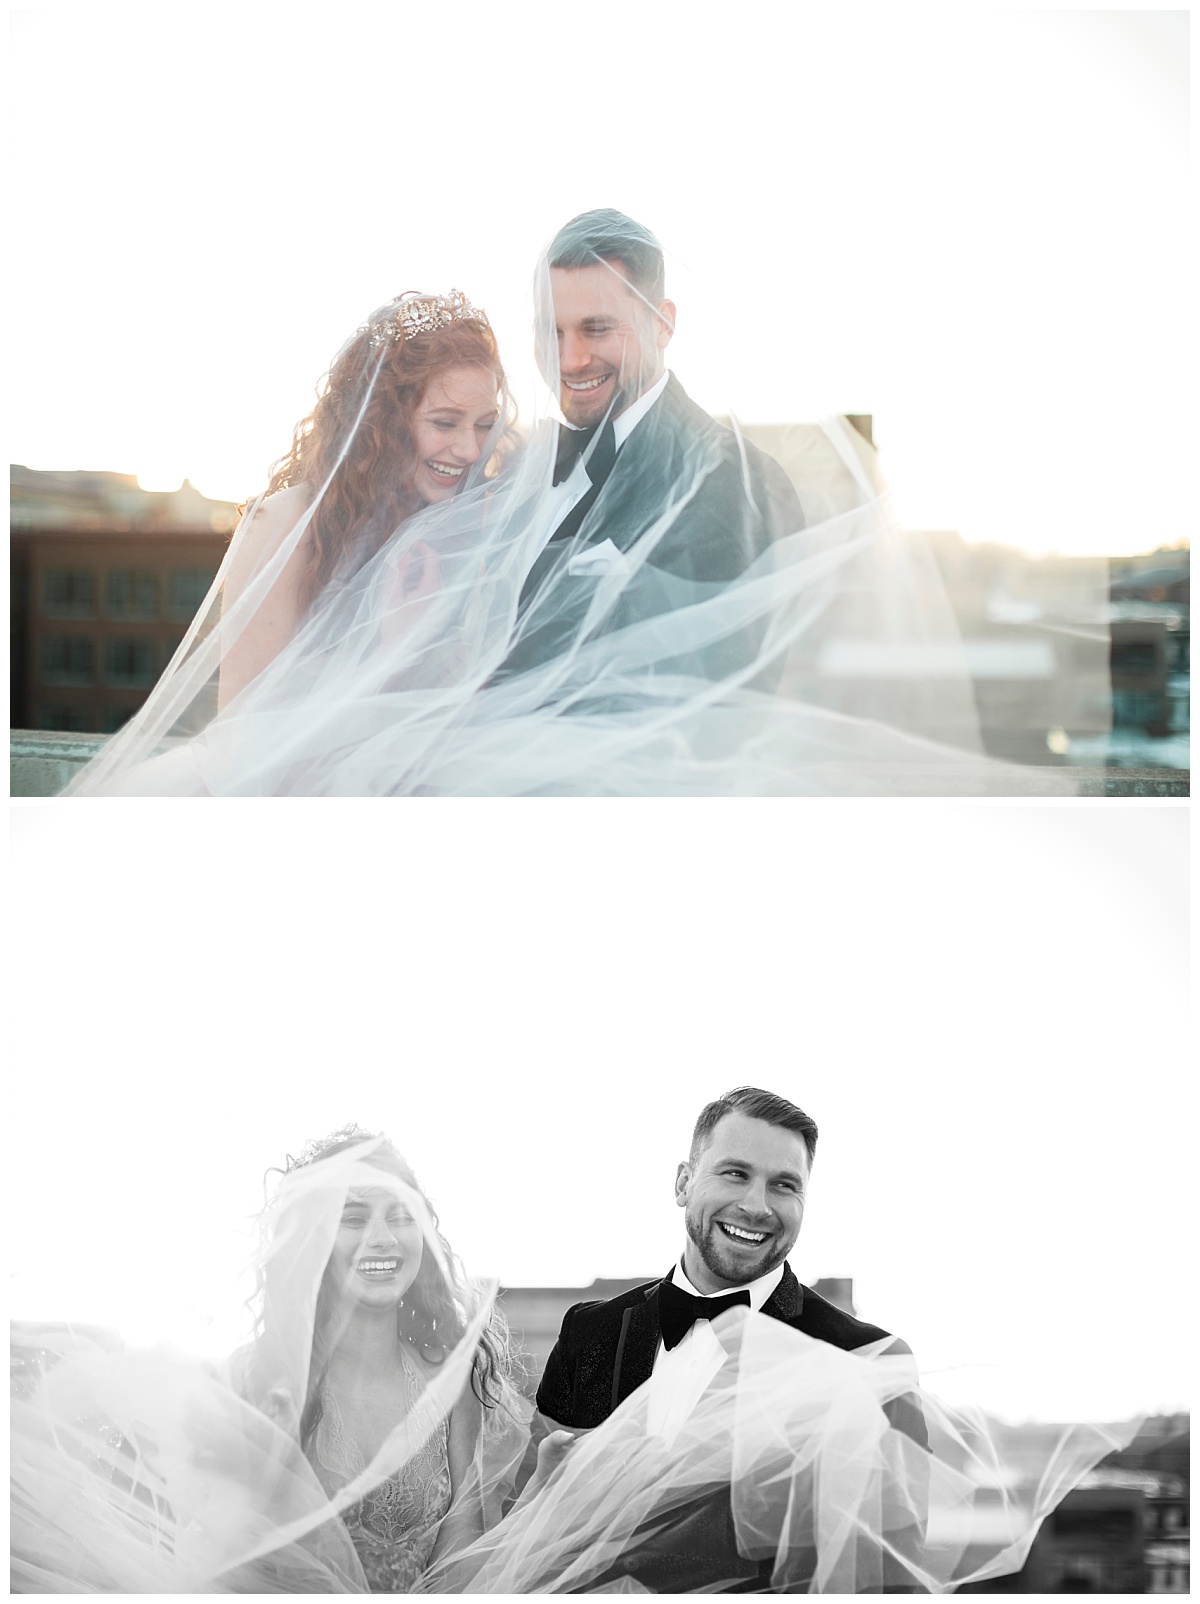 SiouxFallsWedding_Photographer_BethanyMelvinPhotography47.jpg